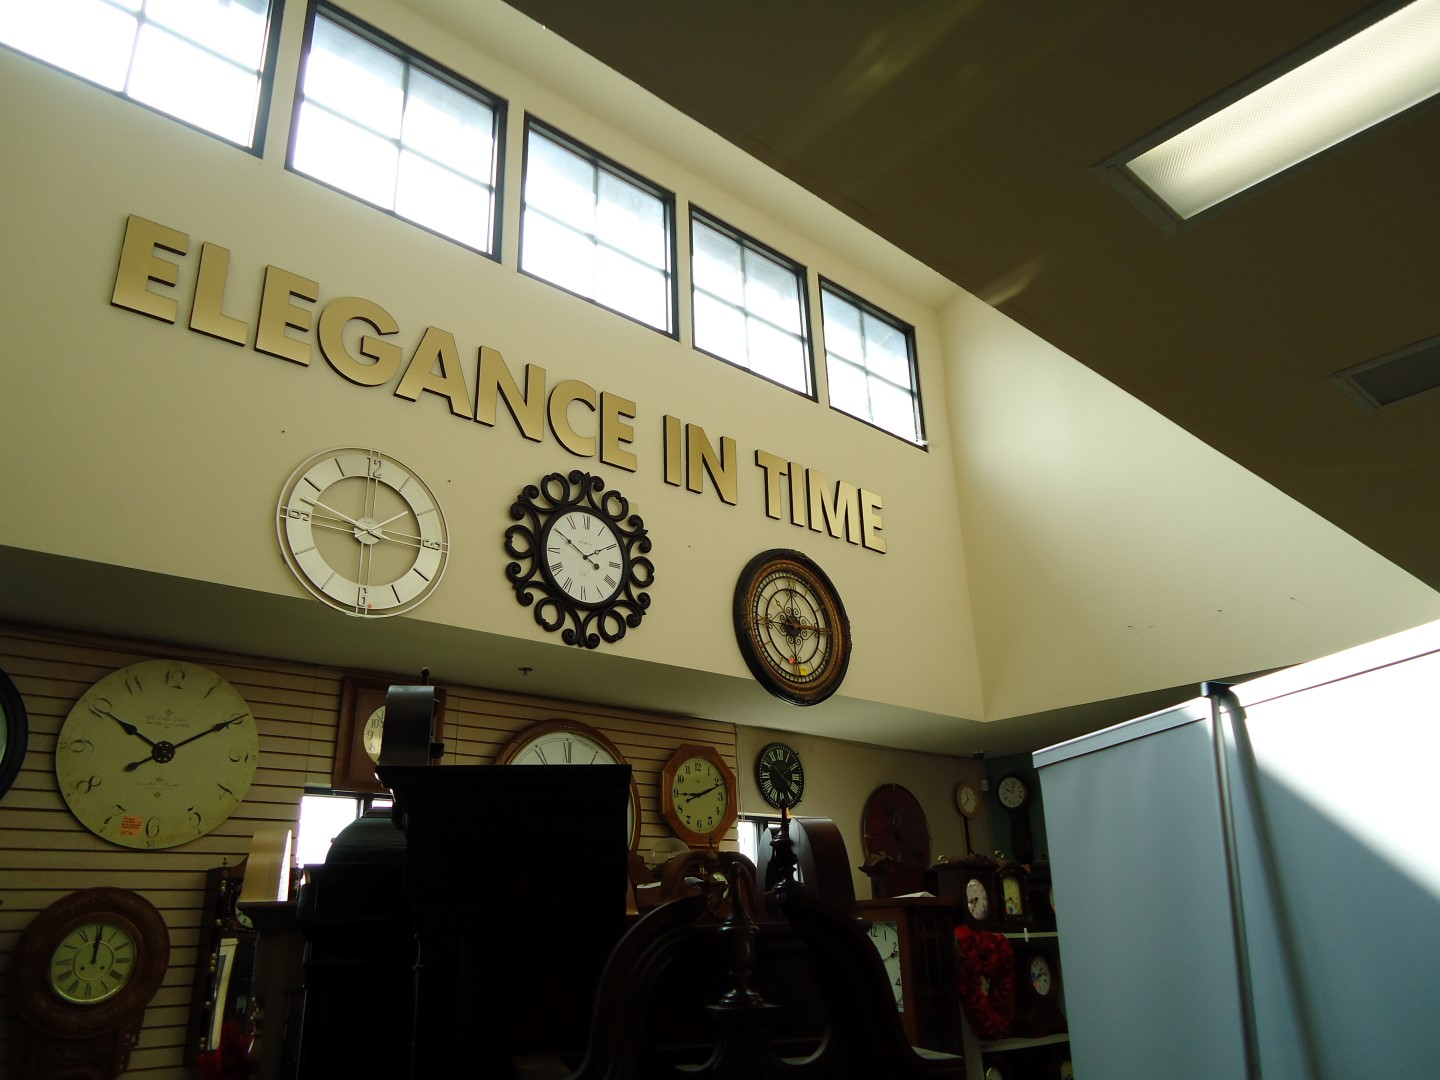 elegance in time 5